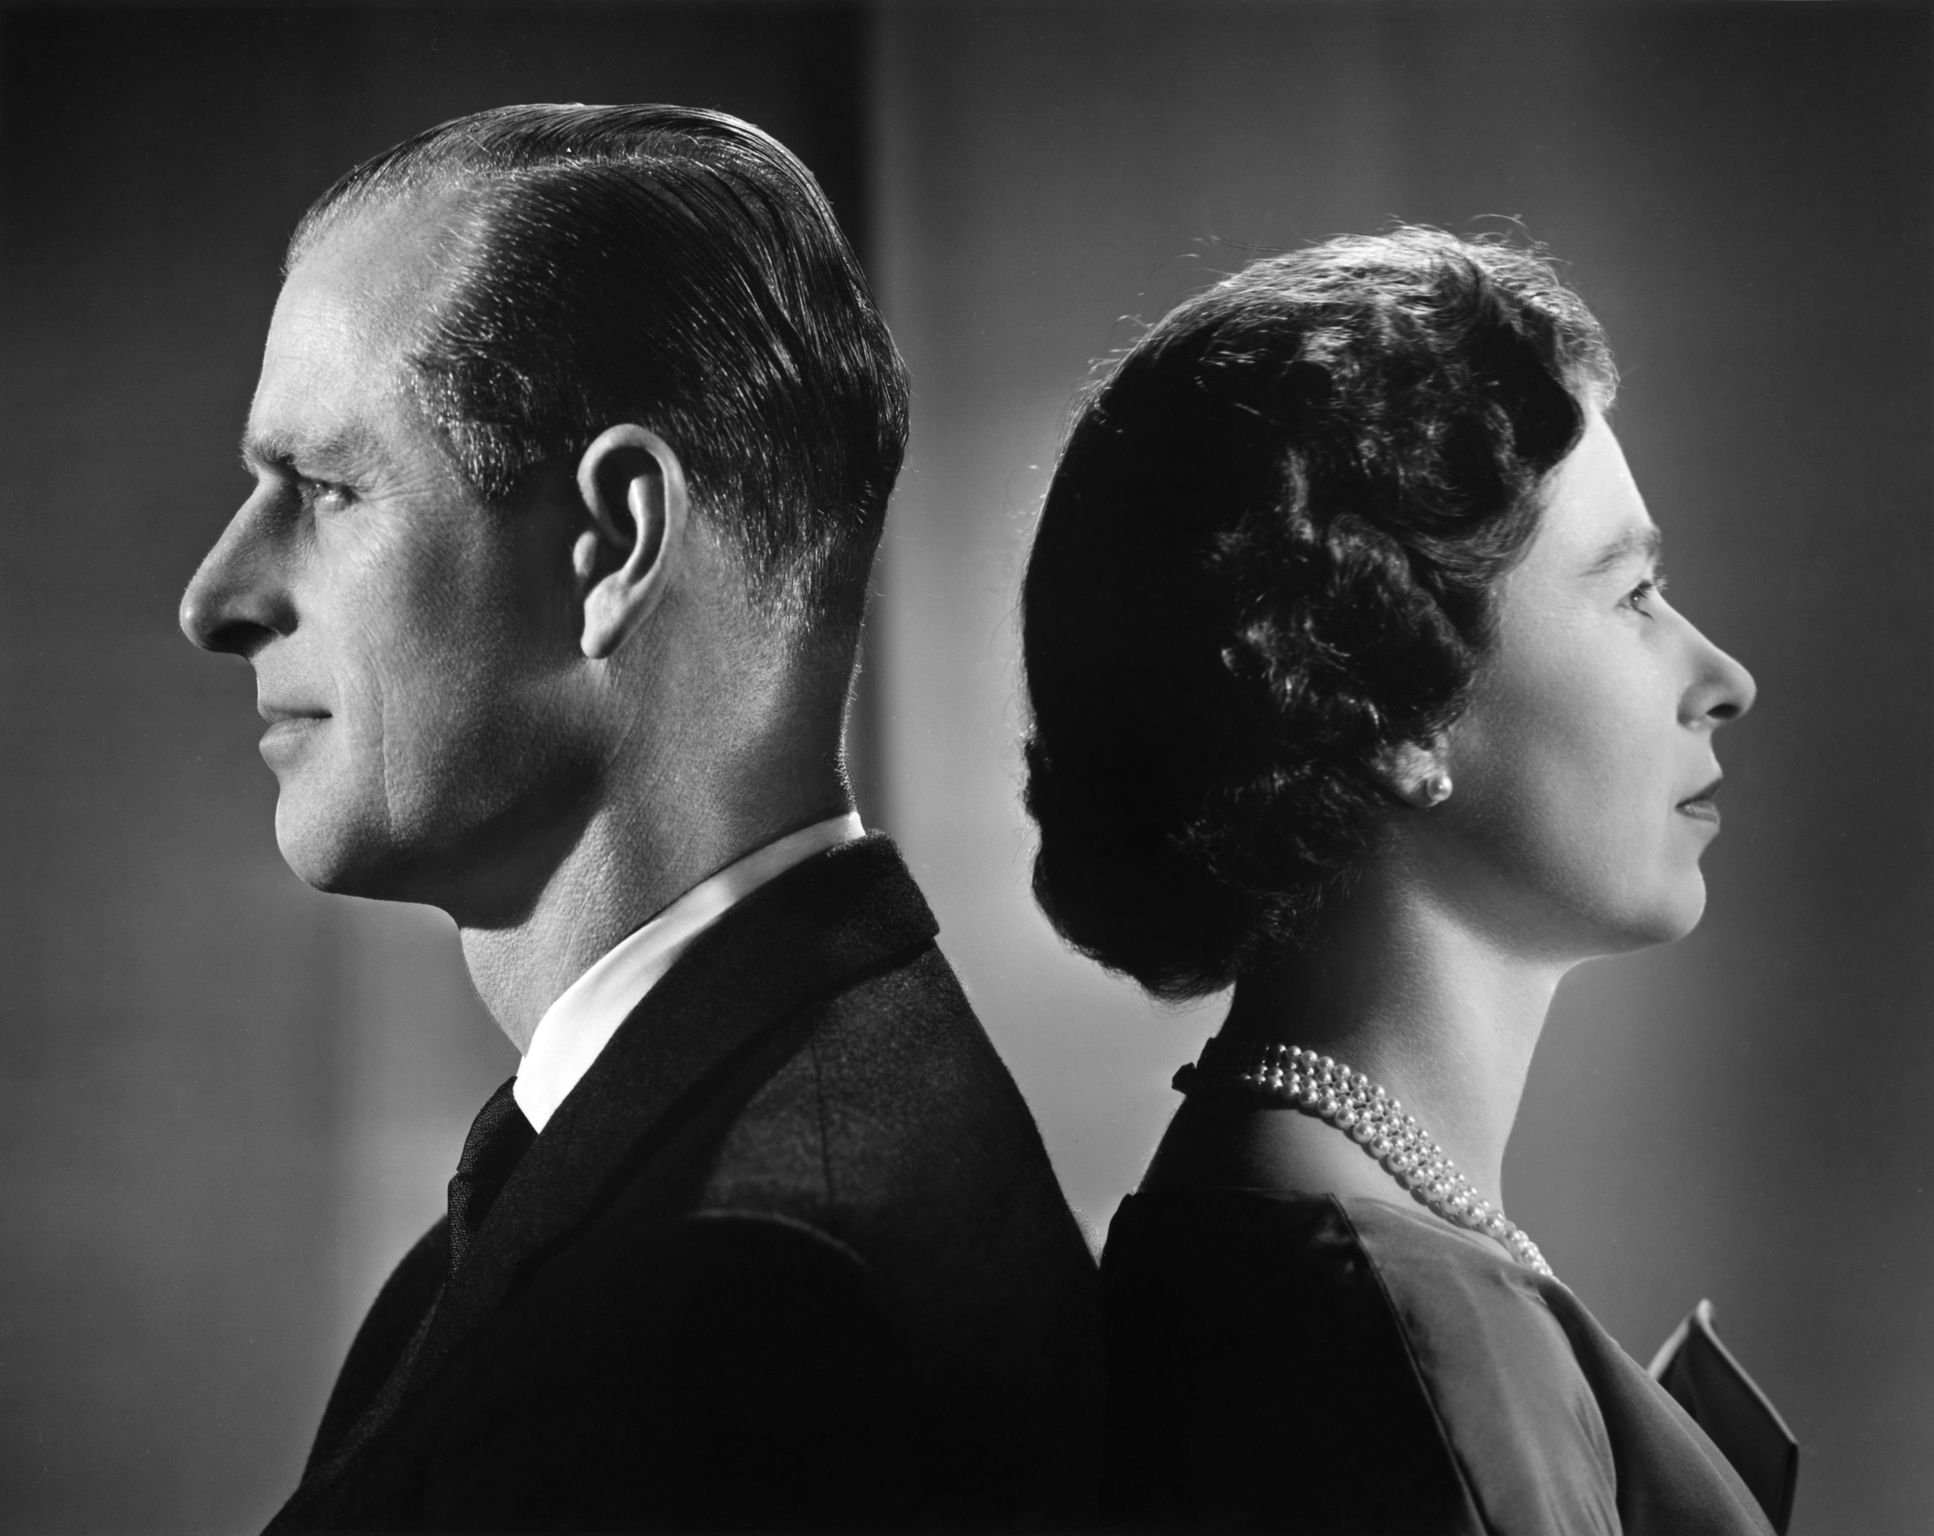 Queen Elizabeth II and Prince Philip, Duke of Edinburgh posing for a portrait in Buckingham Palace in1958 in London, England | Source: Getty Images